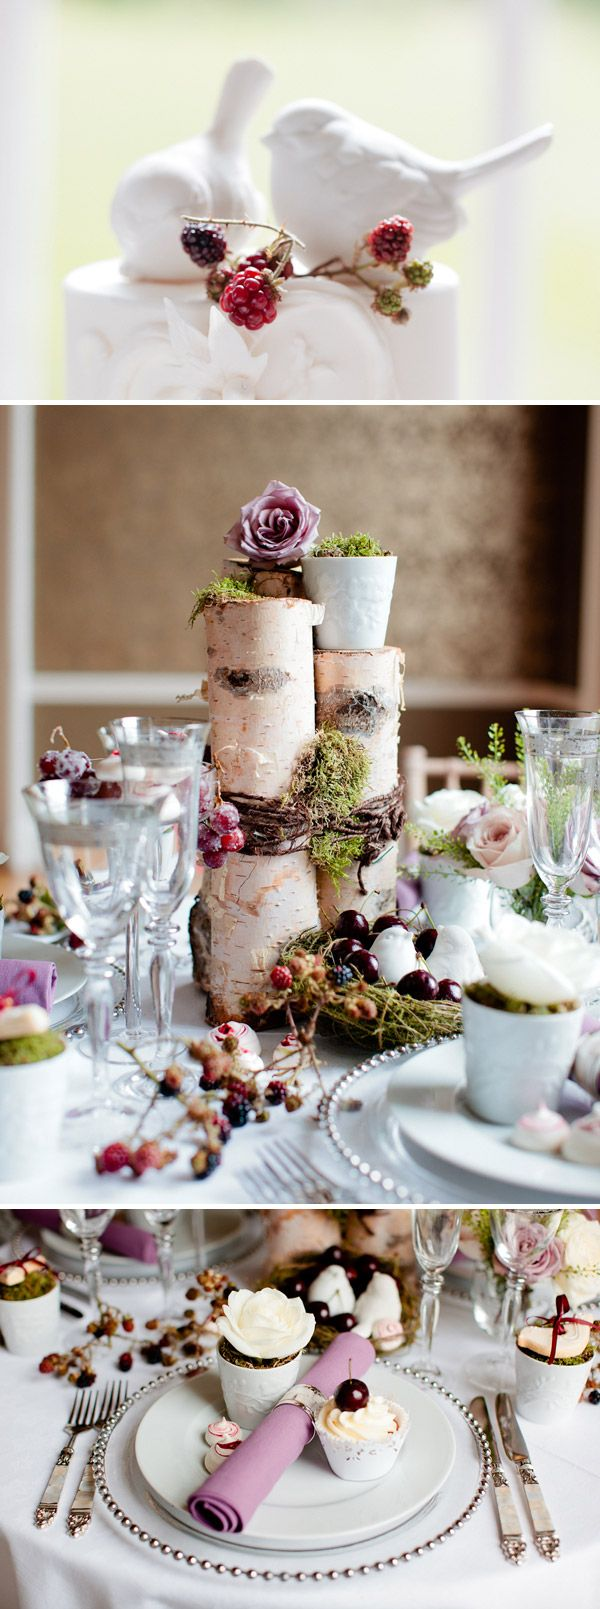 Autumn wedding inspiration Blackberries and bark... such a beautiful combination. For more inspiration visit www.raspberrywedding.com